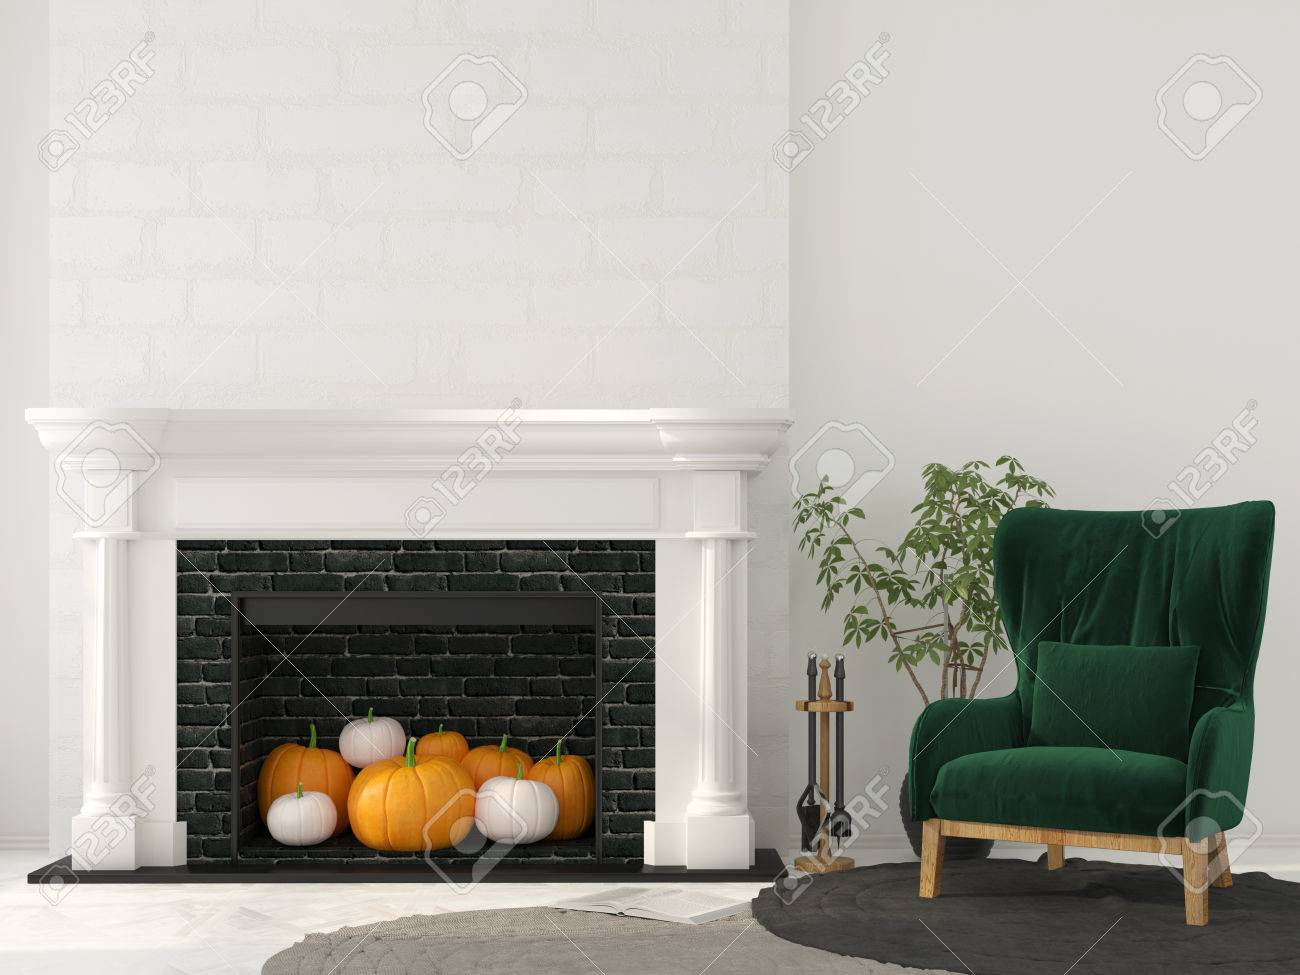 Interior Decoration For Halloween. Classic Fireplace With Pumpkins ...